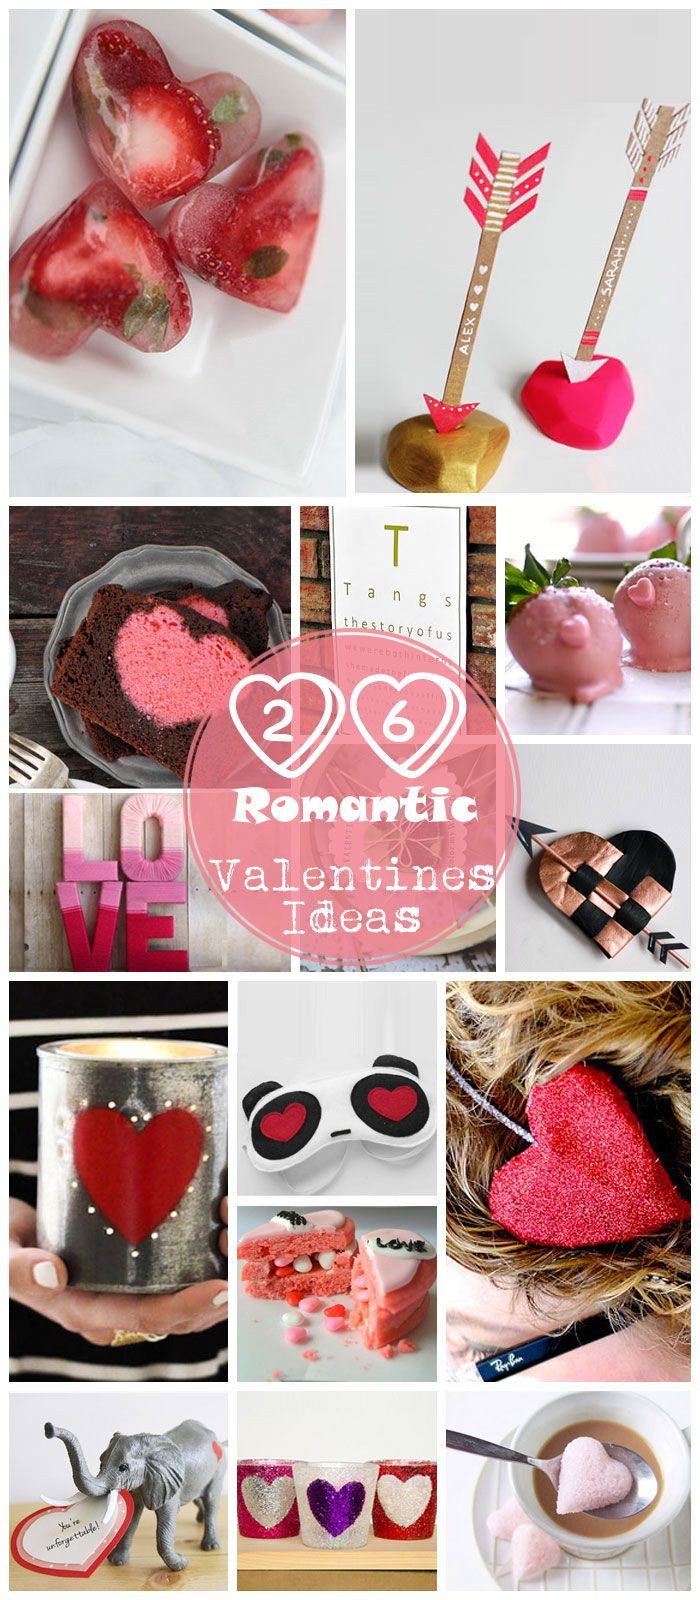 Valentines Gift Ideas Pinterest  Pick for 26 DIY Romantic Valentines Day Ideas for